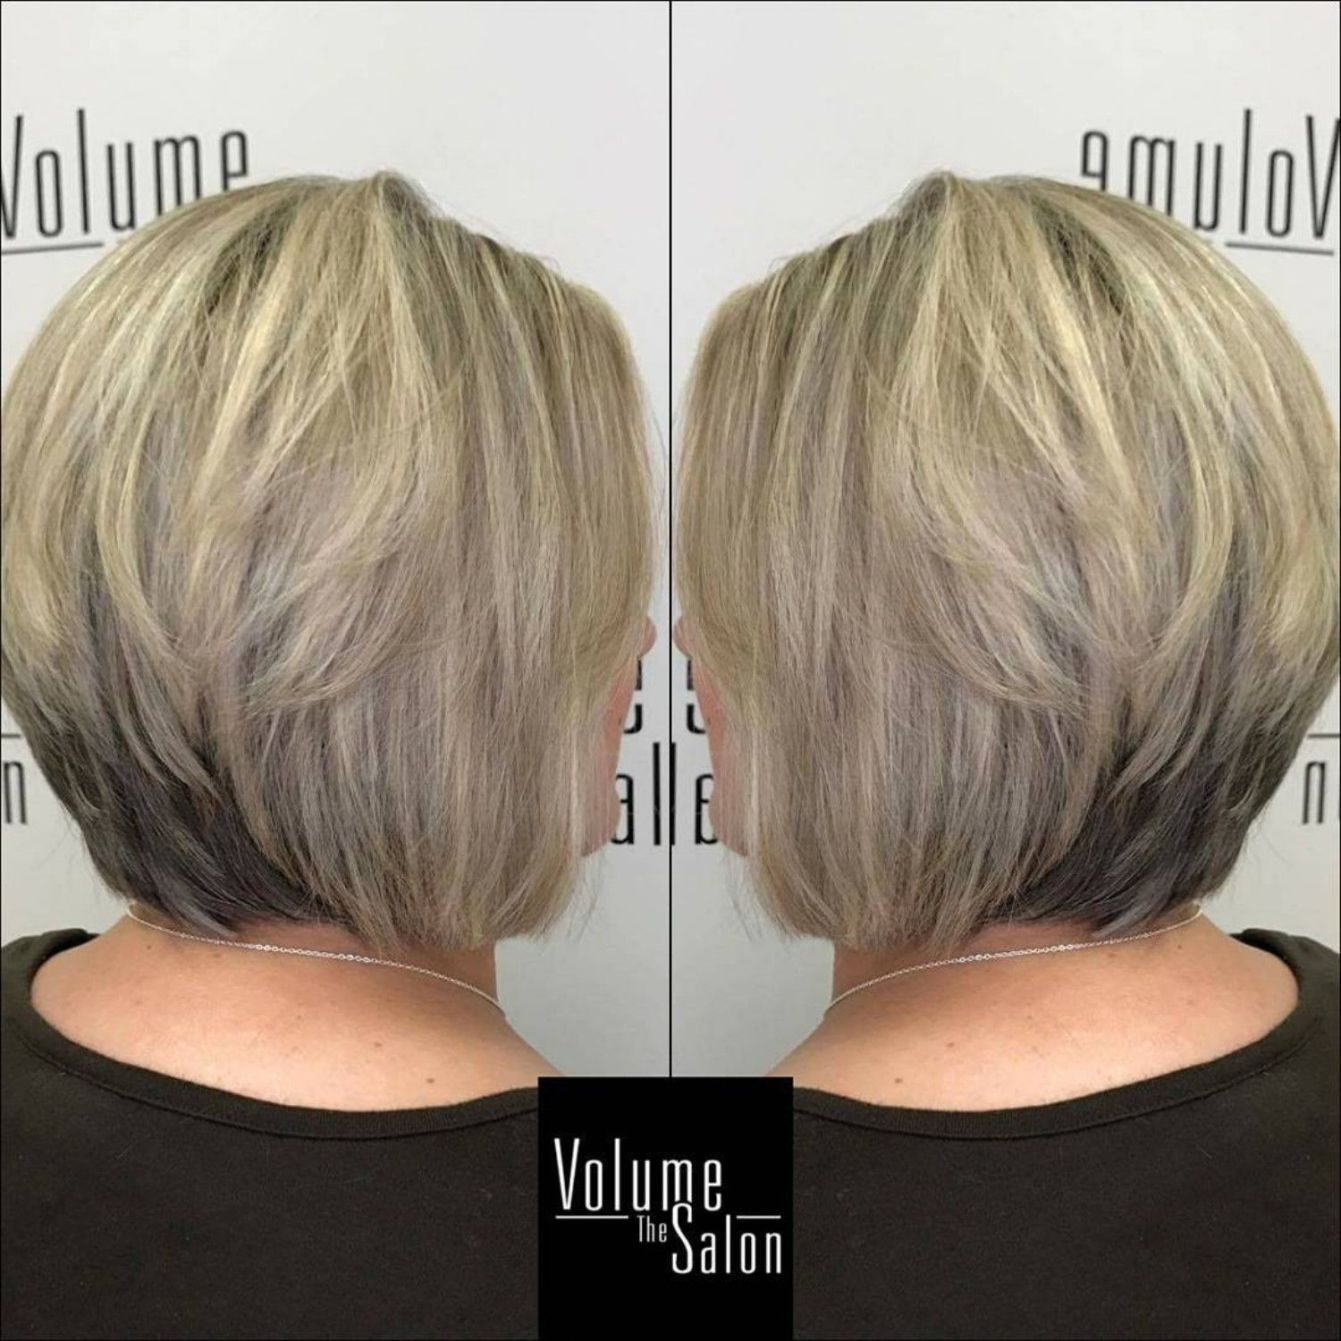 90 Classy And Simple Short Hairstyles For Women Over 50 Hair Styles Short Hair Styles Bob Hairstyles For Fine Hair